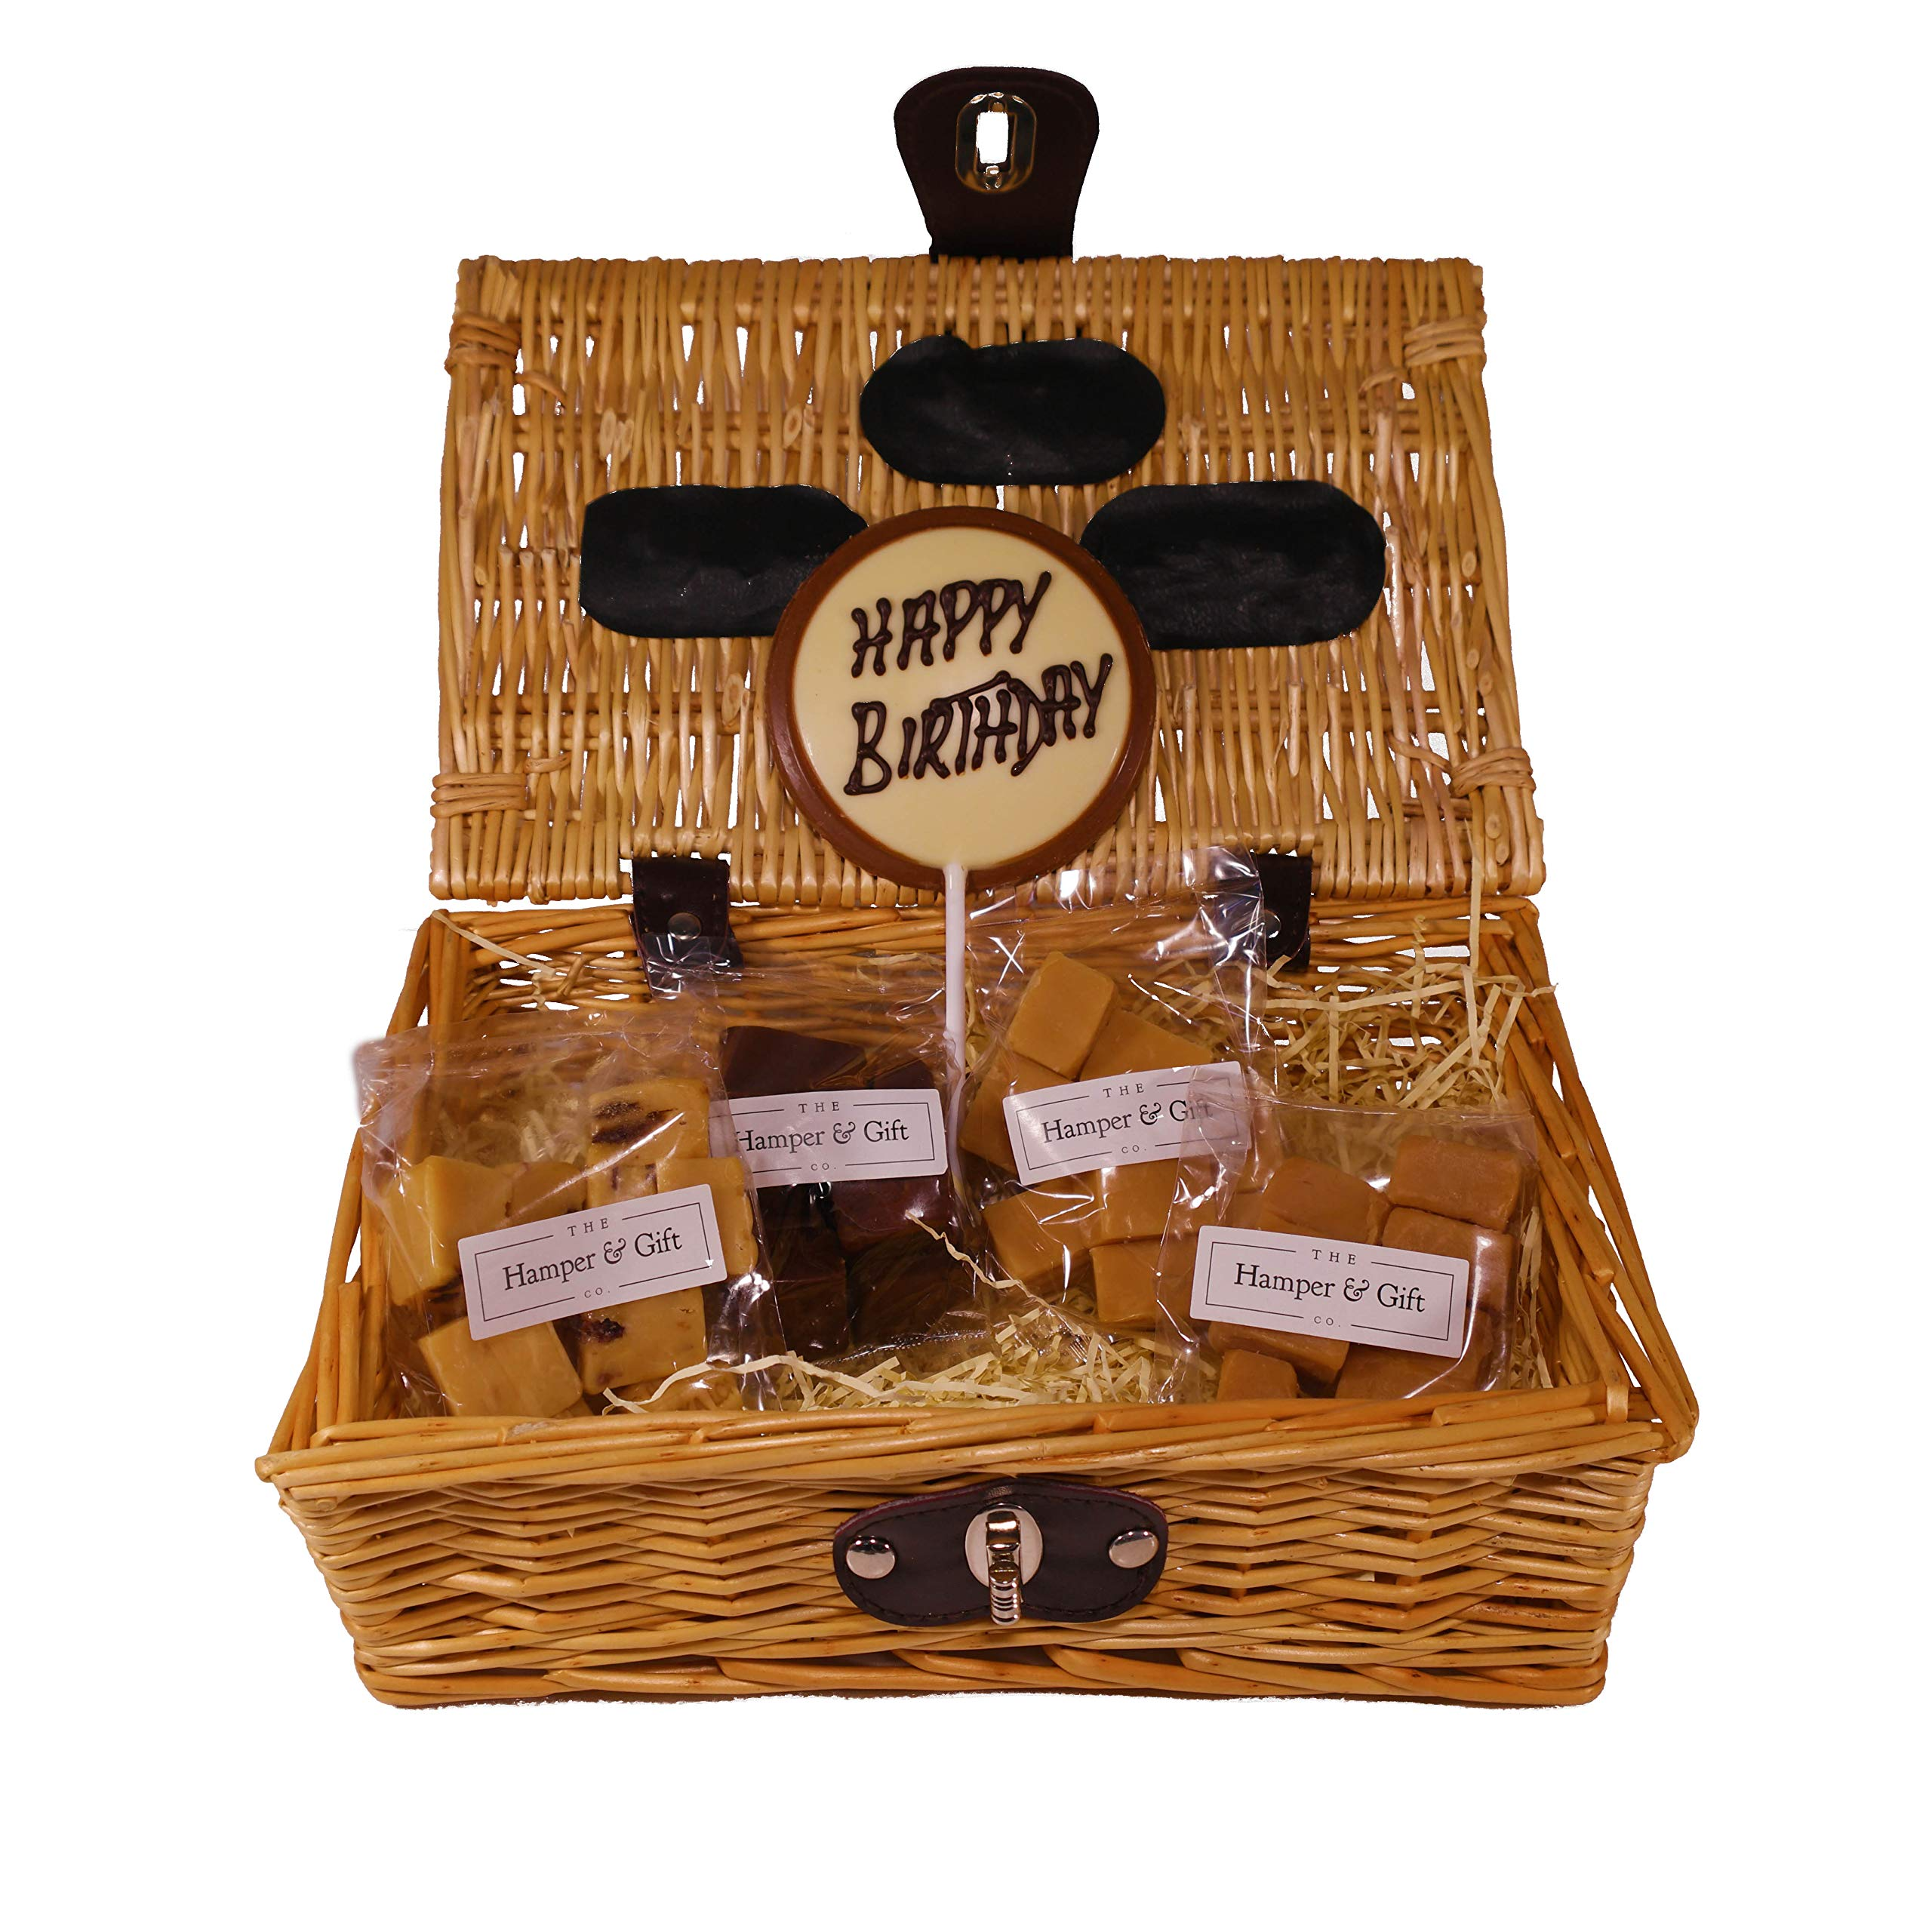 Happy Birthday Fudge Hamper Gift Basket Perfect Confectionery Present For Him Or Her Husband Or Wife Boyfriend Or Girlfriend Son Or Daughter Buy Online In Sri Lanka At Desertcart Productid 51754356